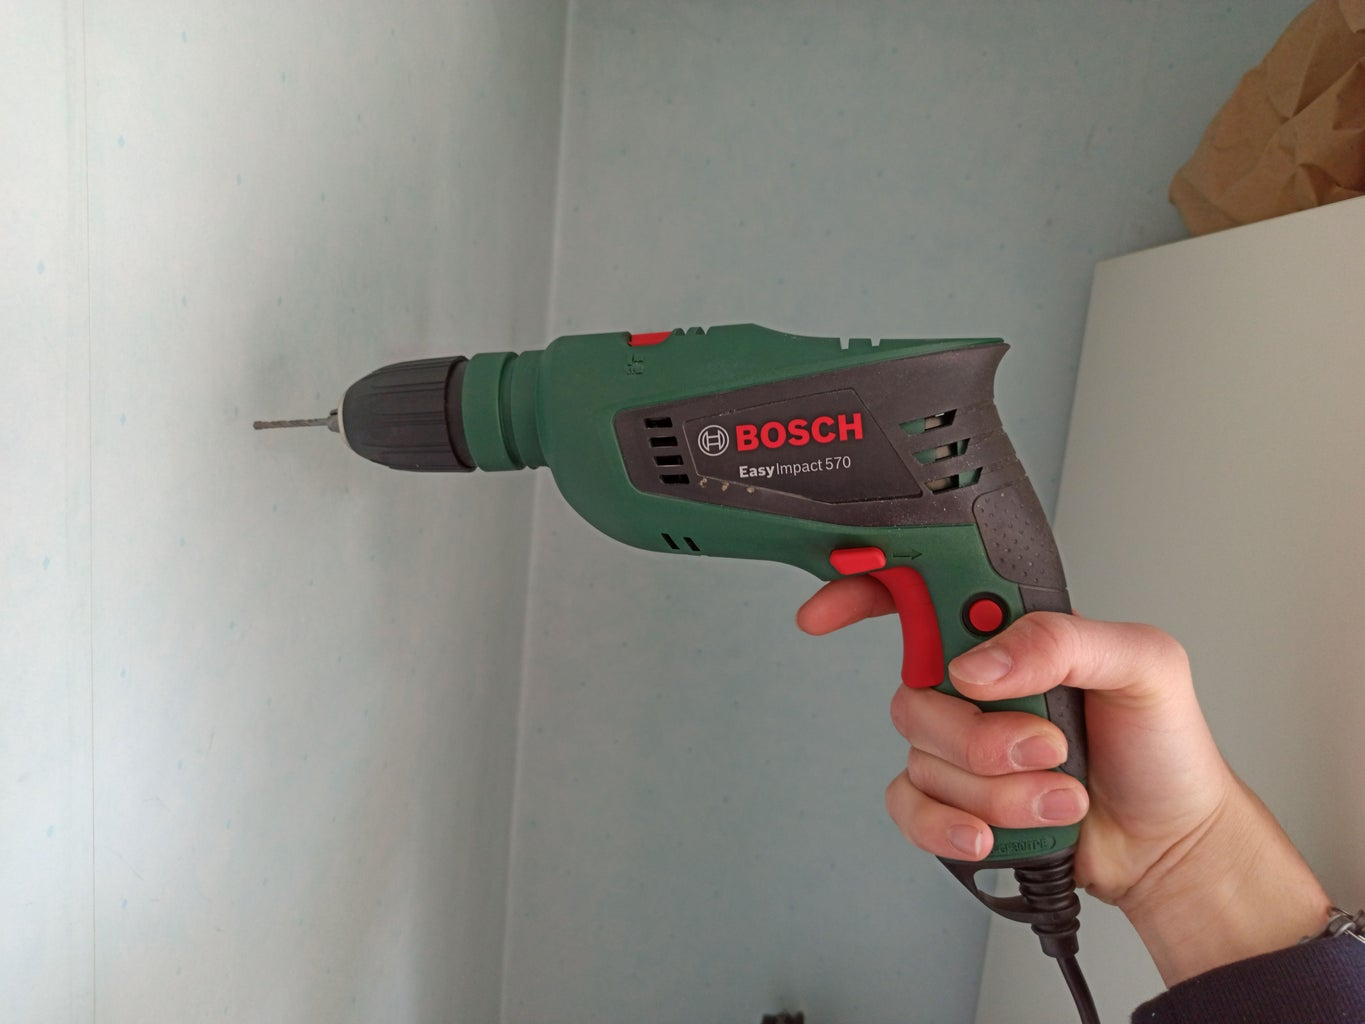 Drill the Wall and Insert the Plugs